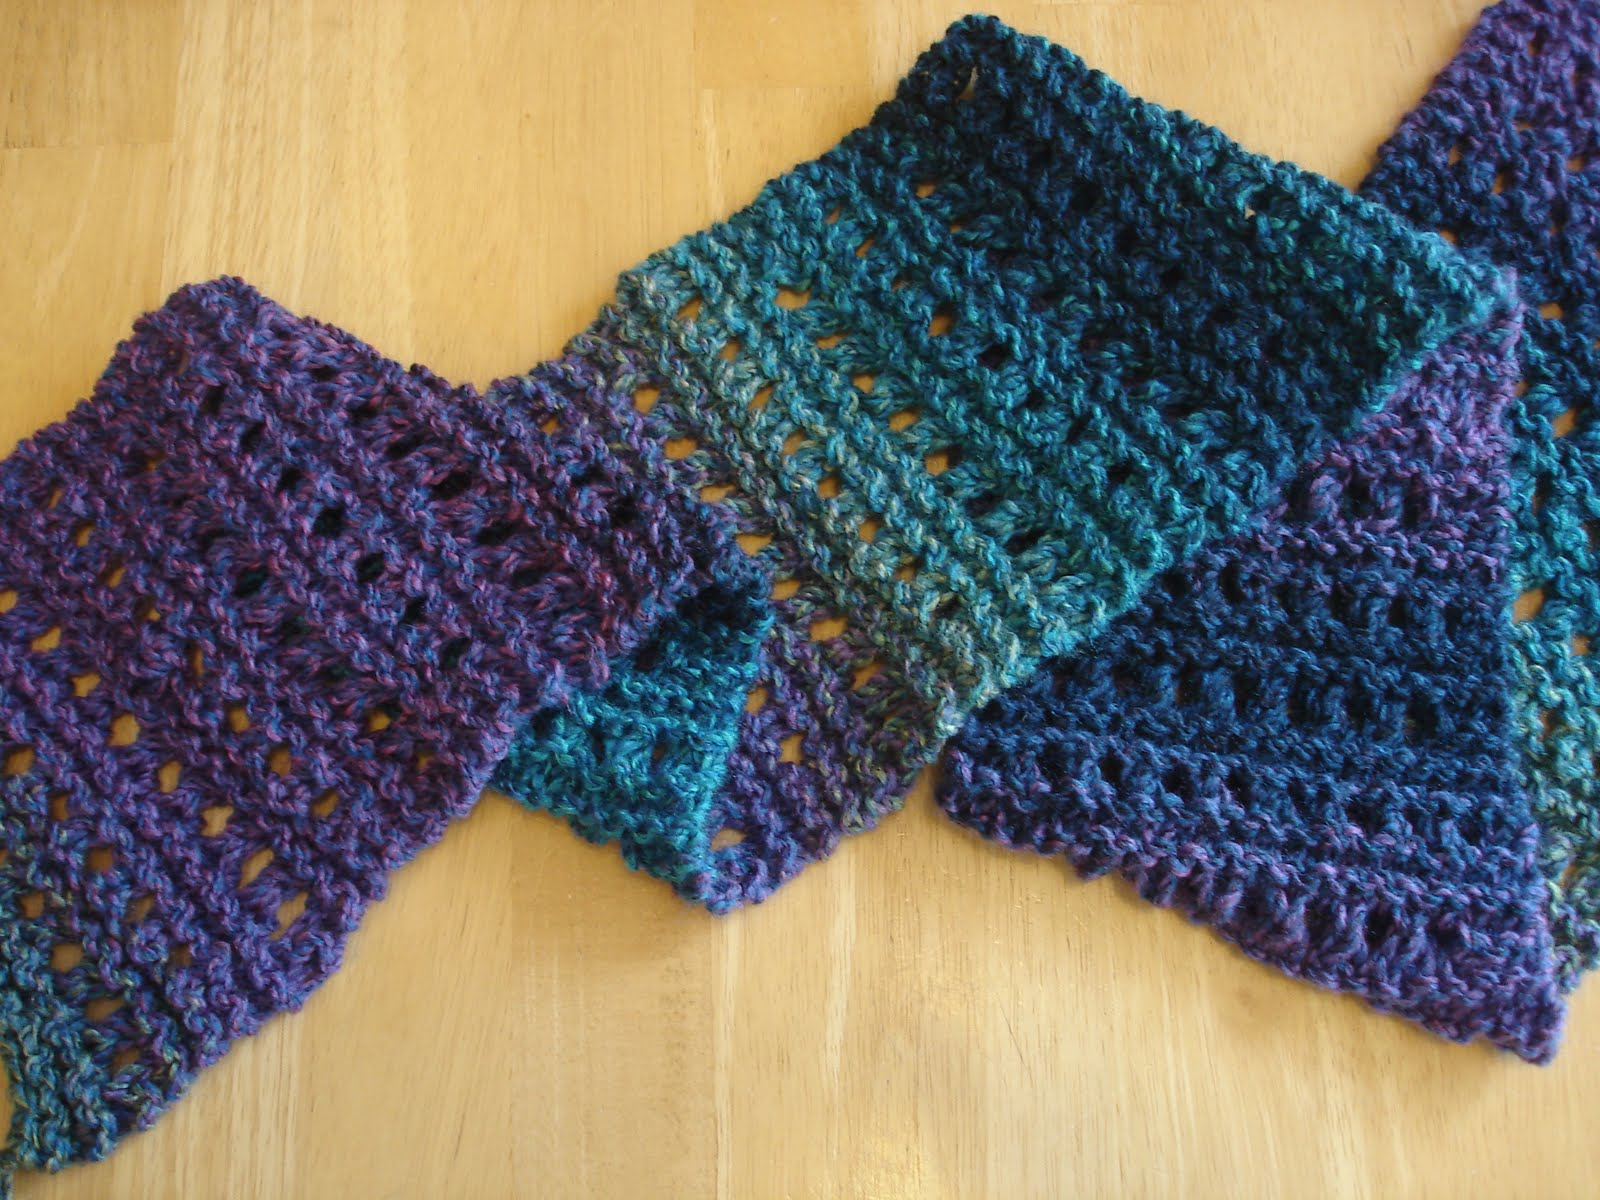 Easy Knitting Stitches Scarves : Six New Free Patterns Knit Crochet Scarves